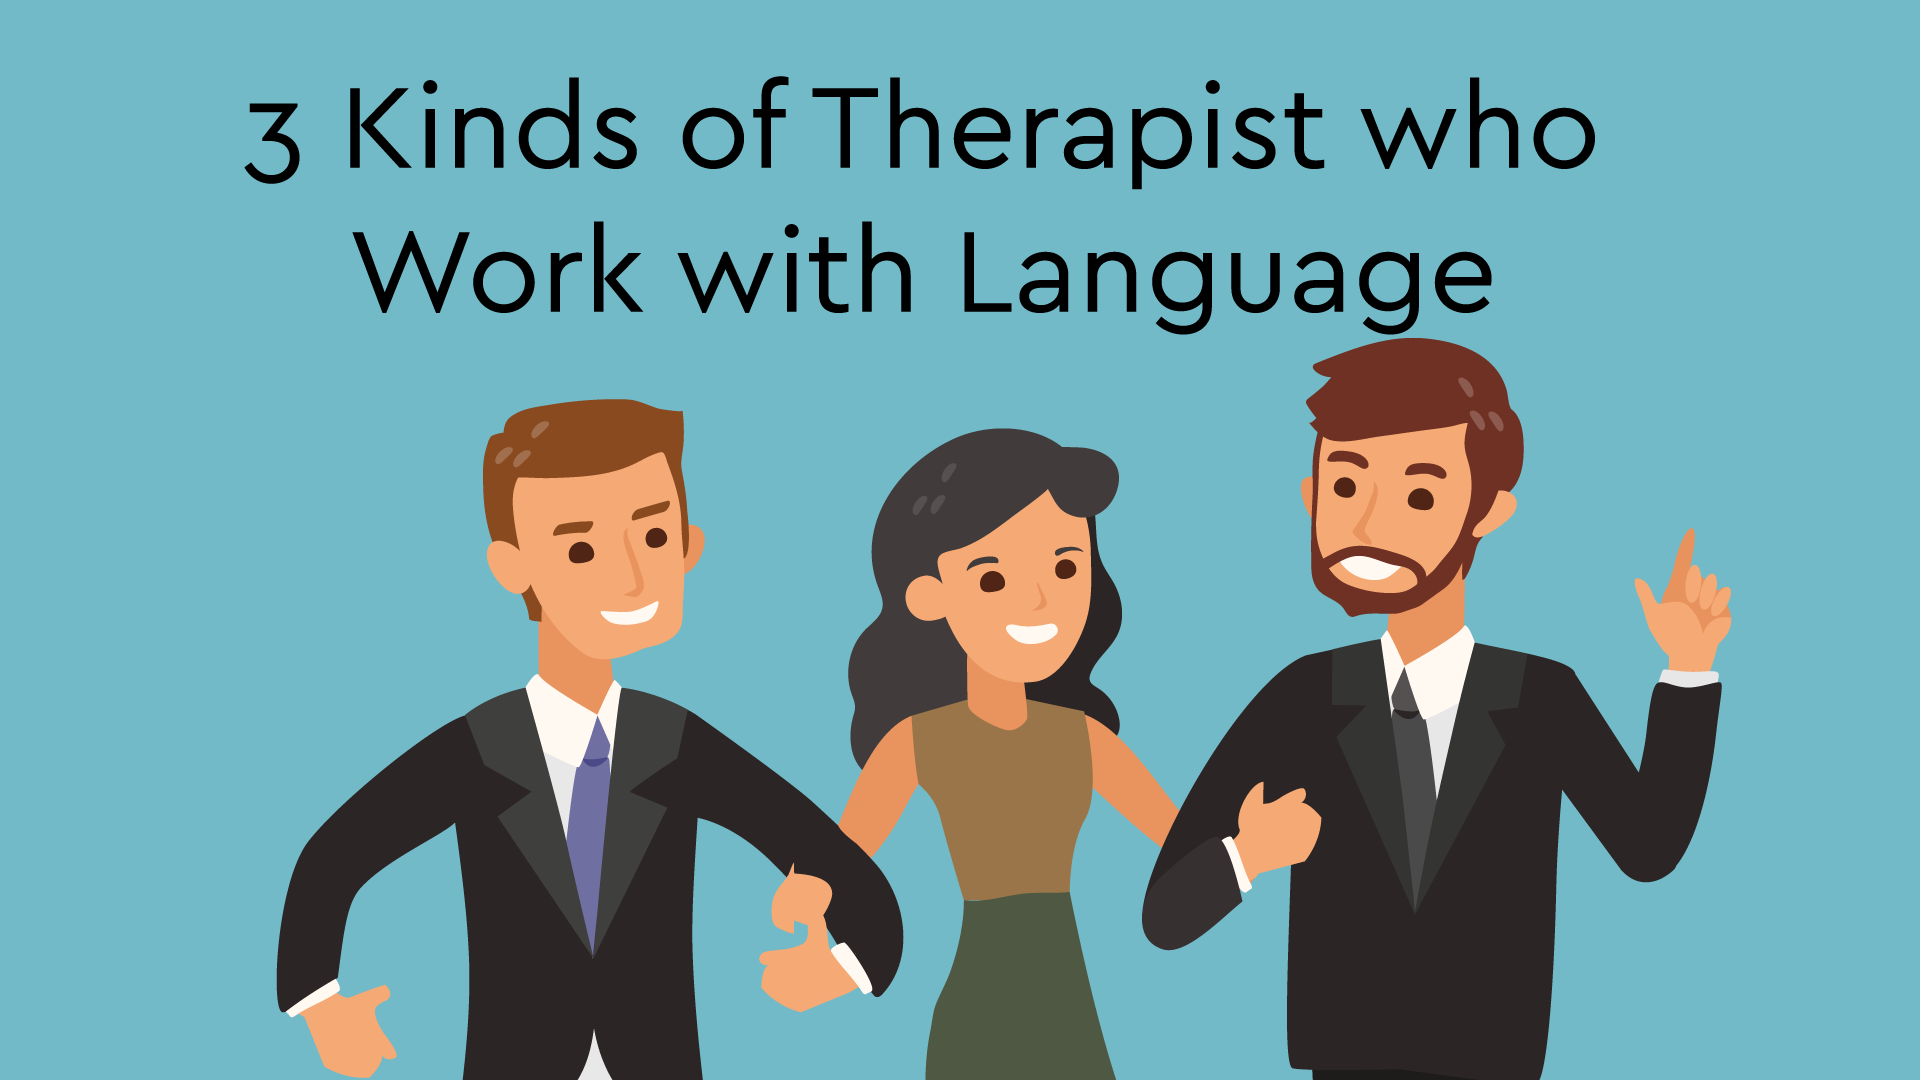 therapists who work with language